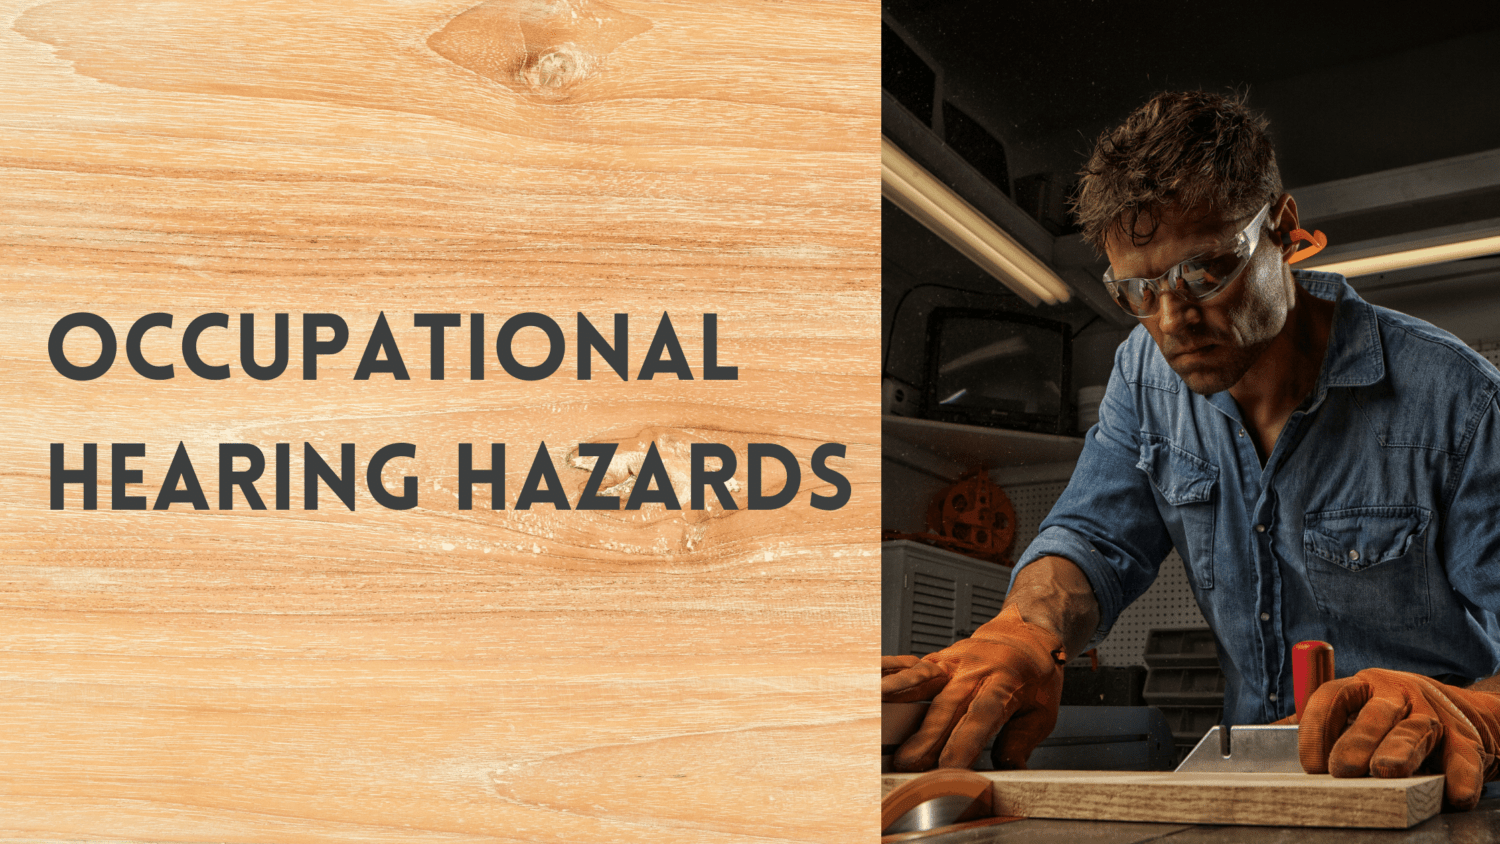 Occupational Hearing Hazards